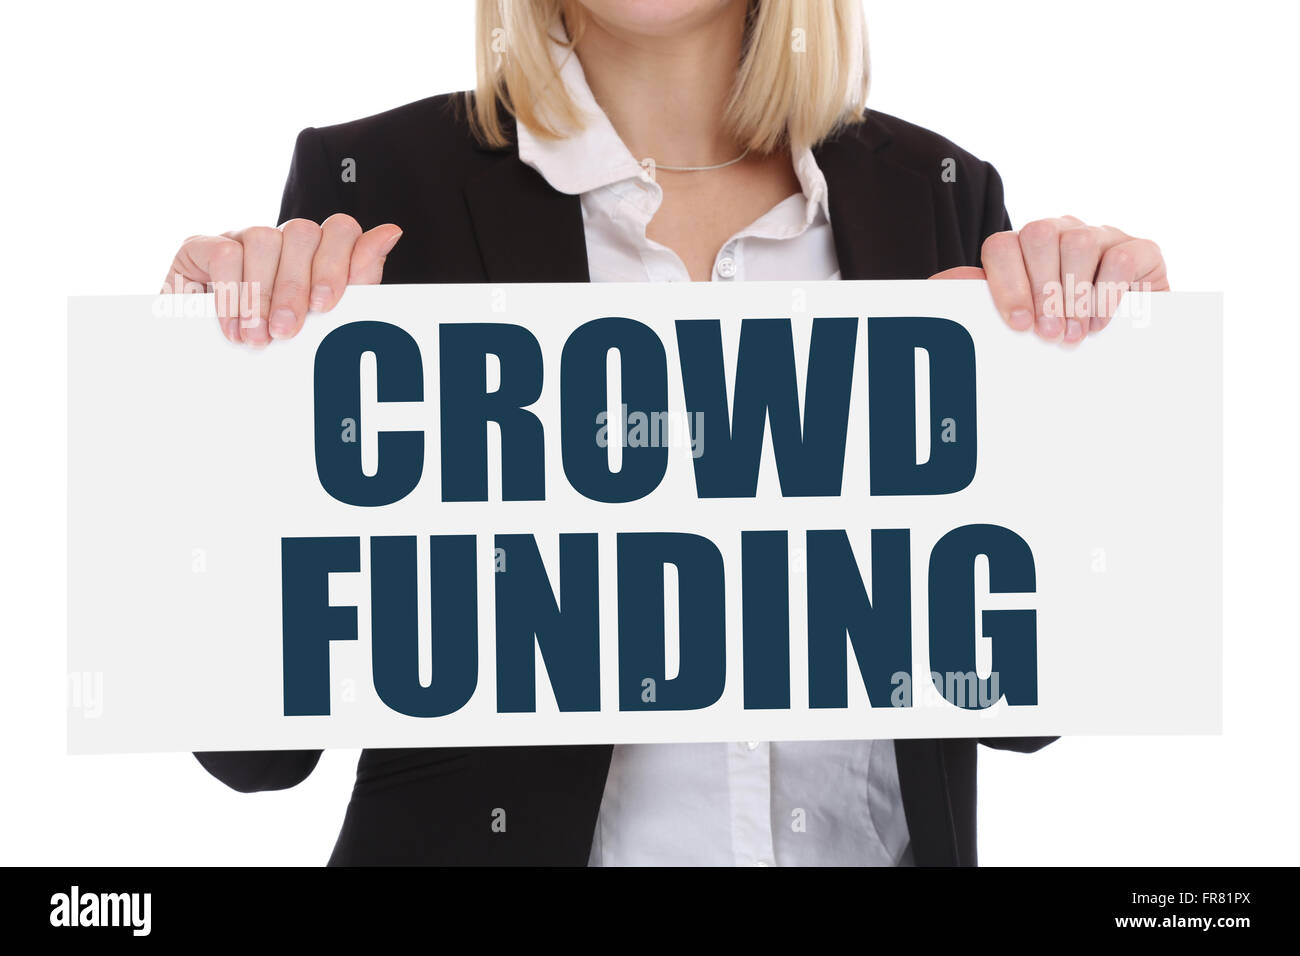 Crowd funding crowdfunding collecting money online investment internet business concept financial campaign - Stock Image